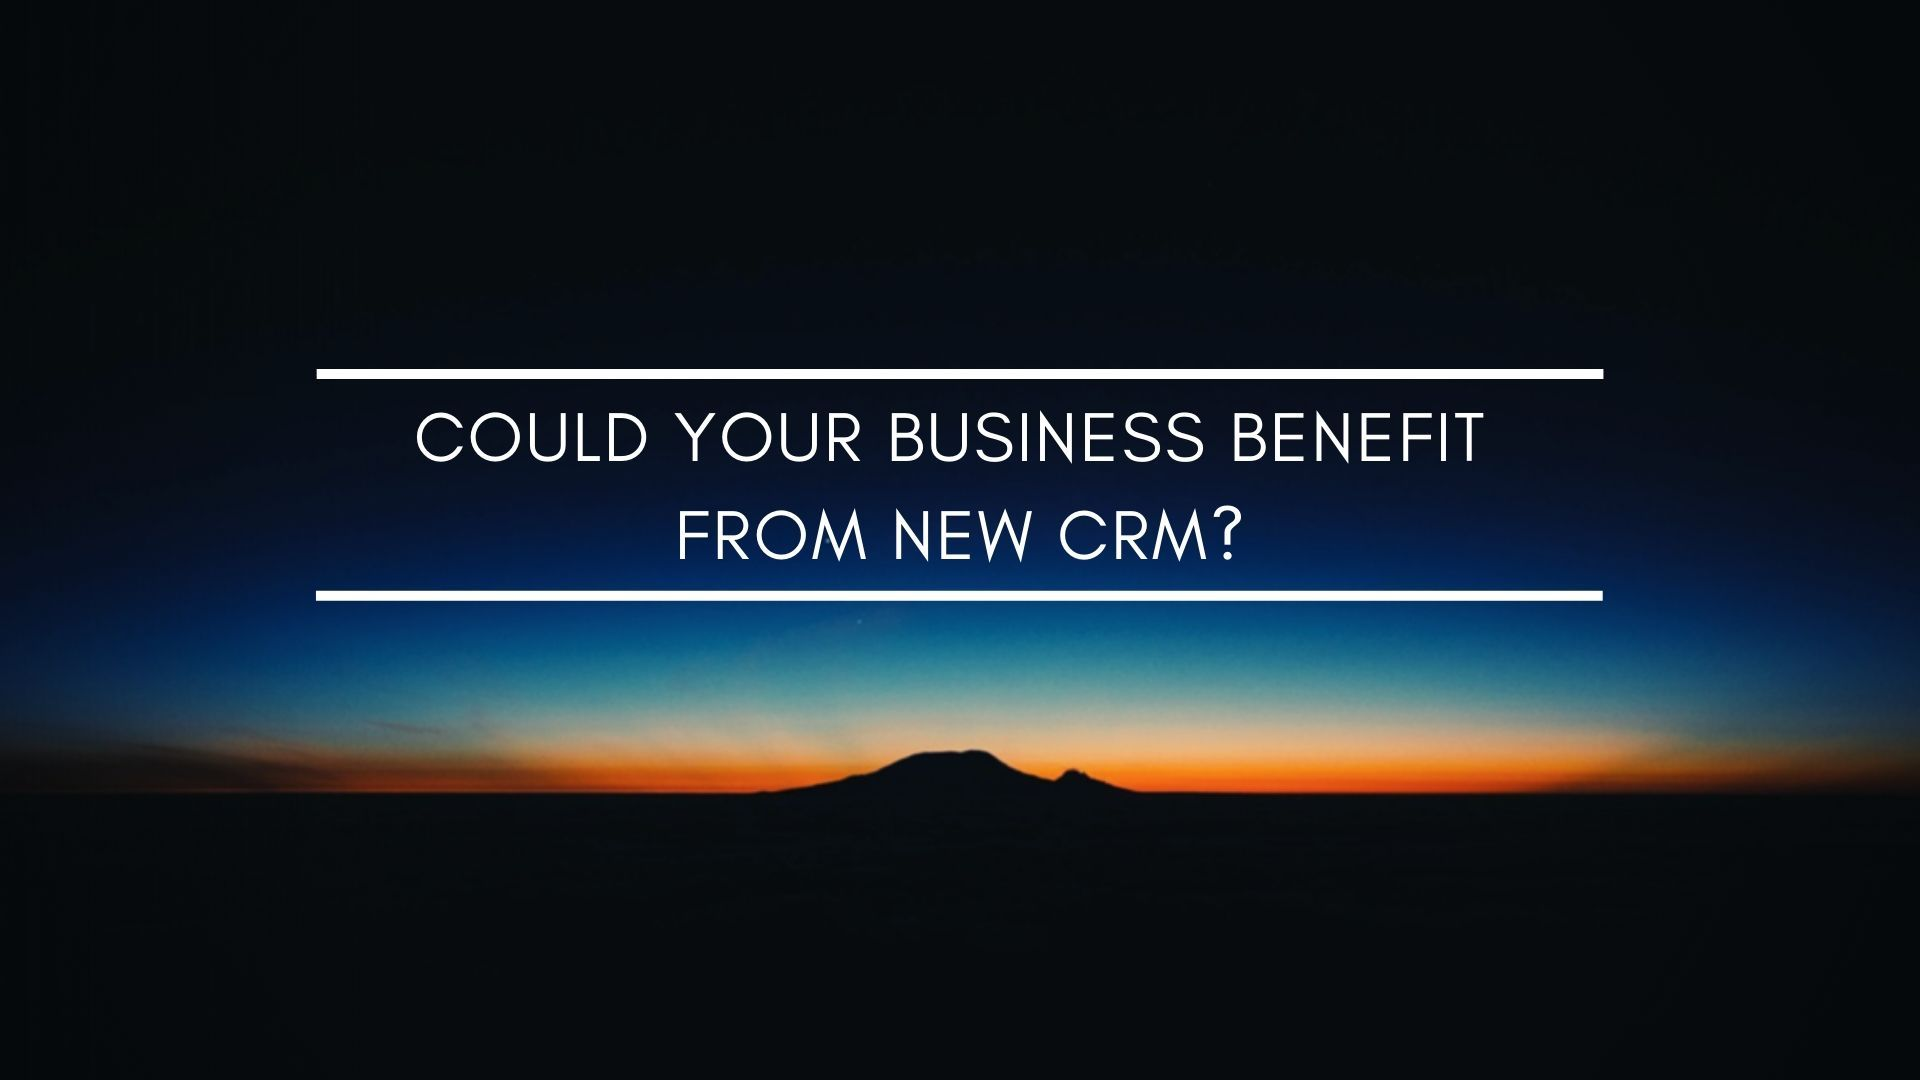 Could your business benefit from new CRM?